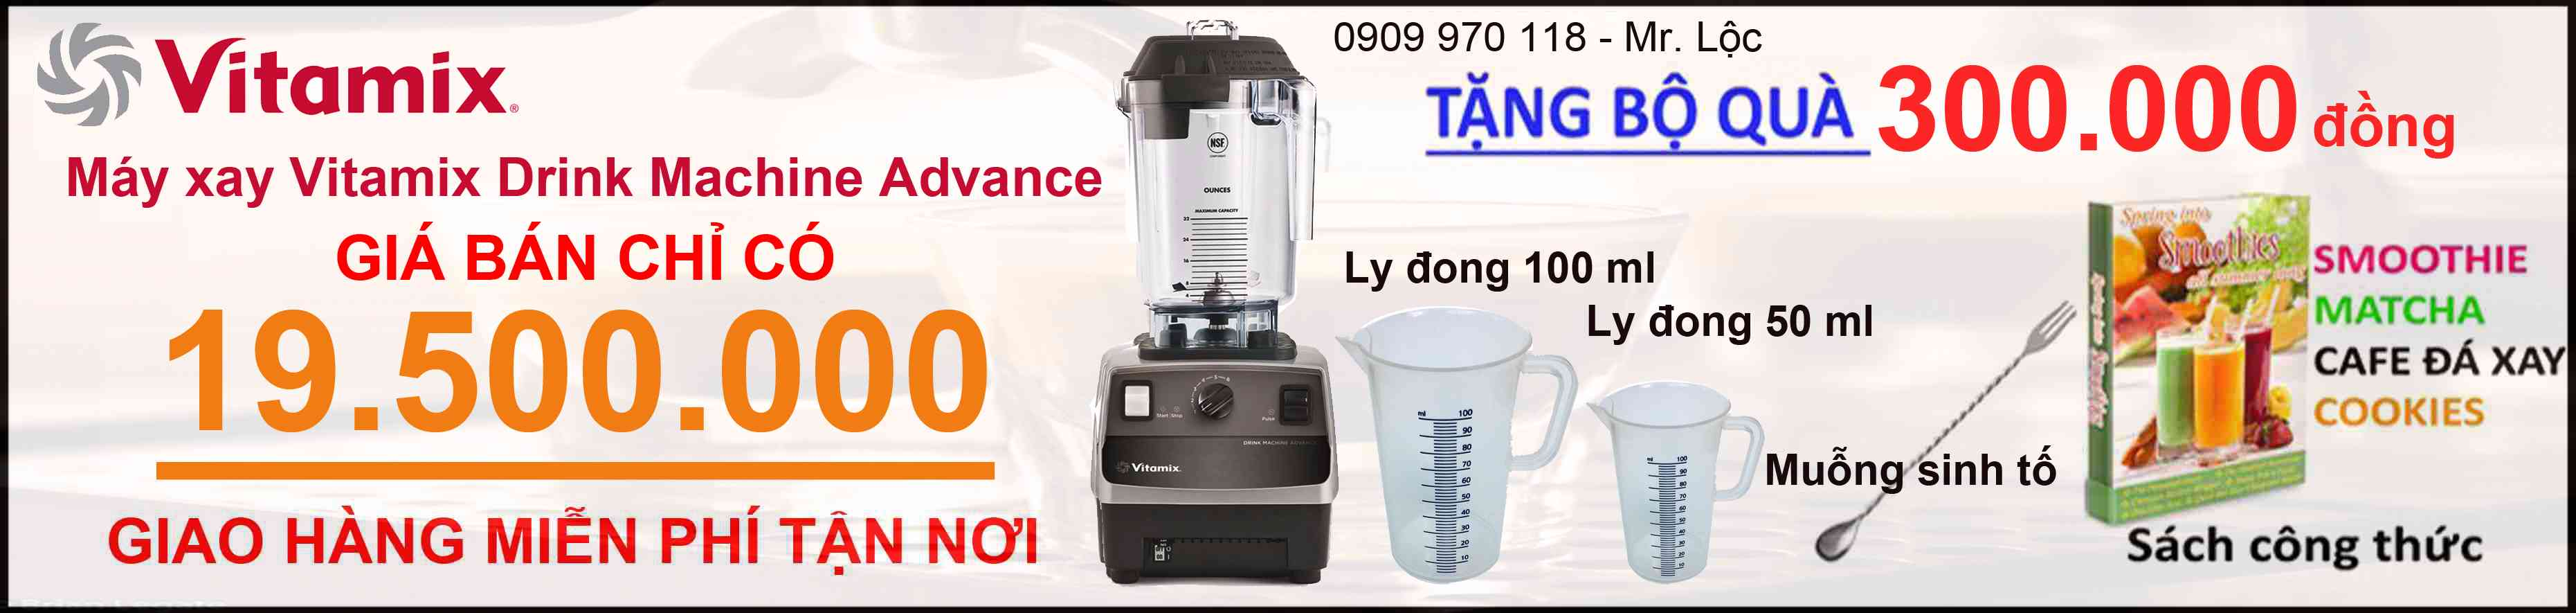 km-tang-may-xay-vitamix-c